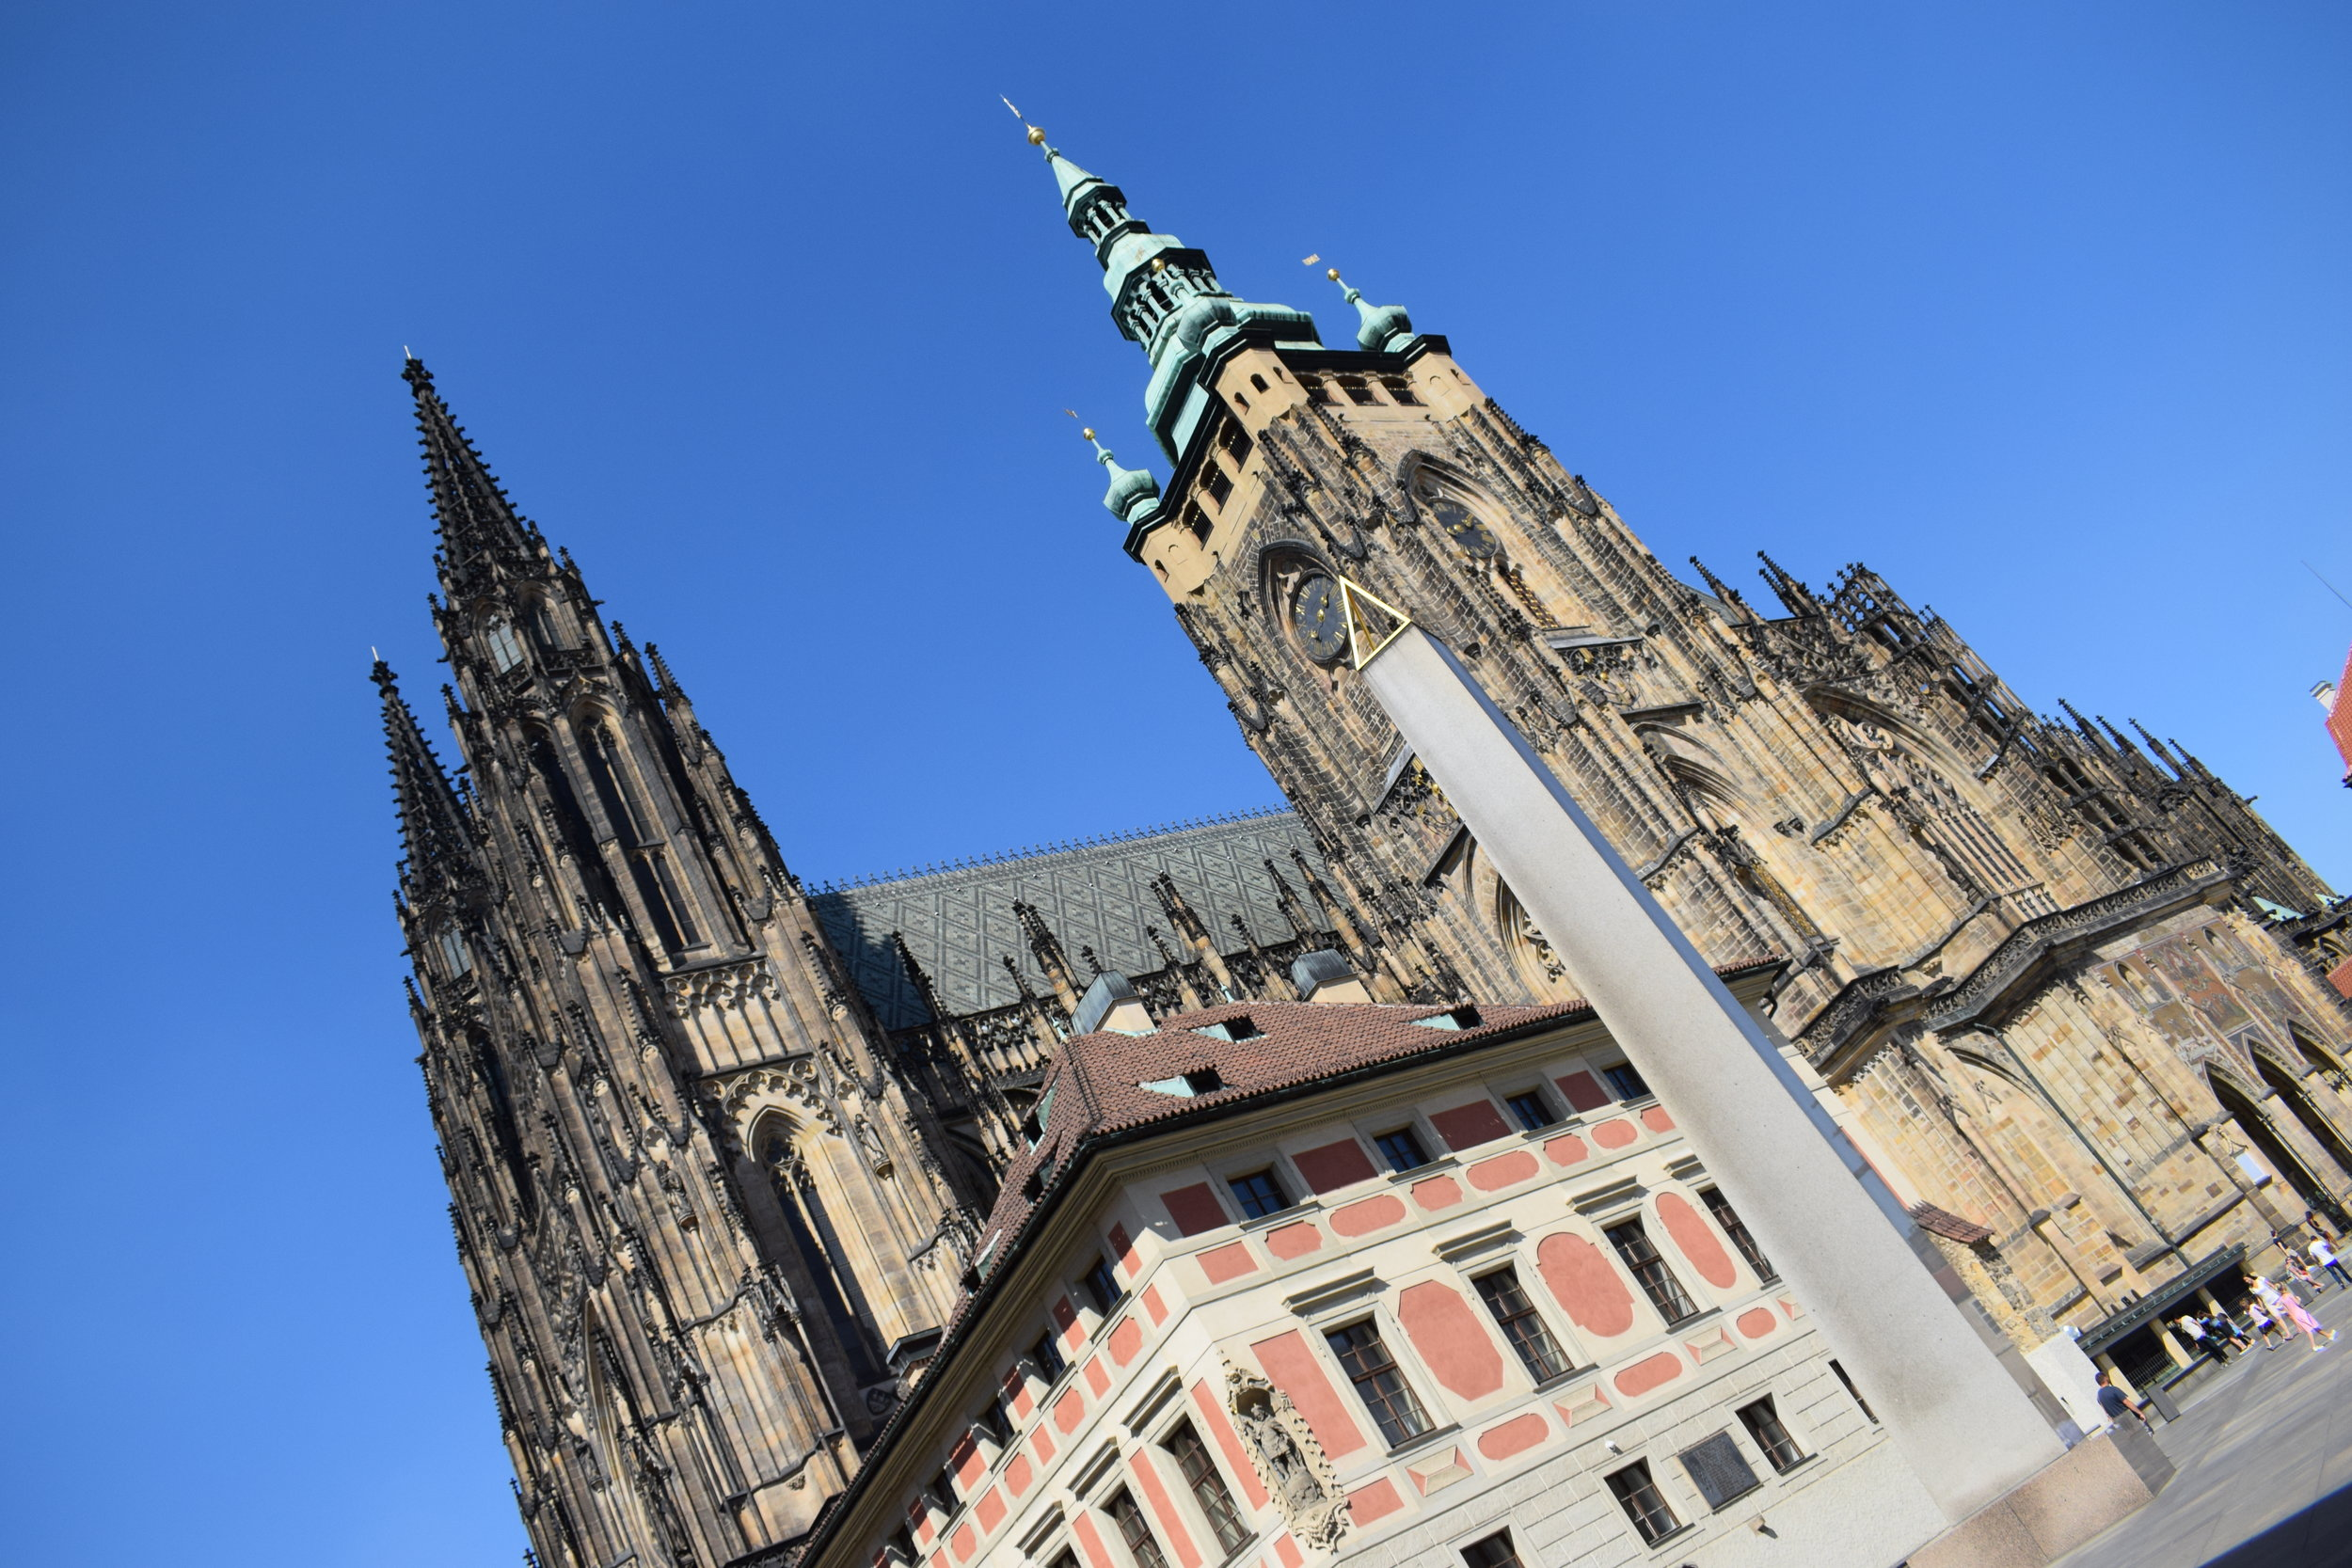 St Vitus' Cathedral stands tall over the rest of Prague Castle.